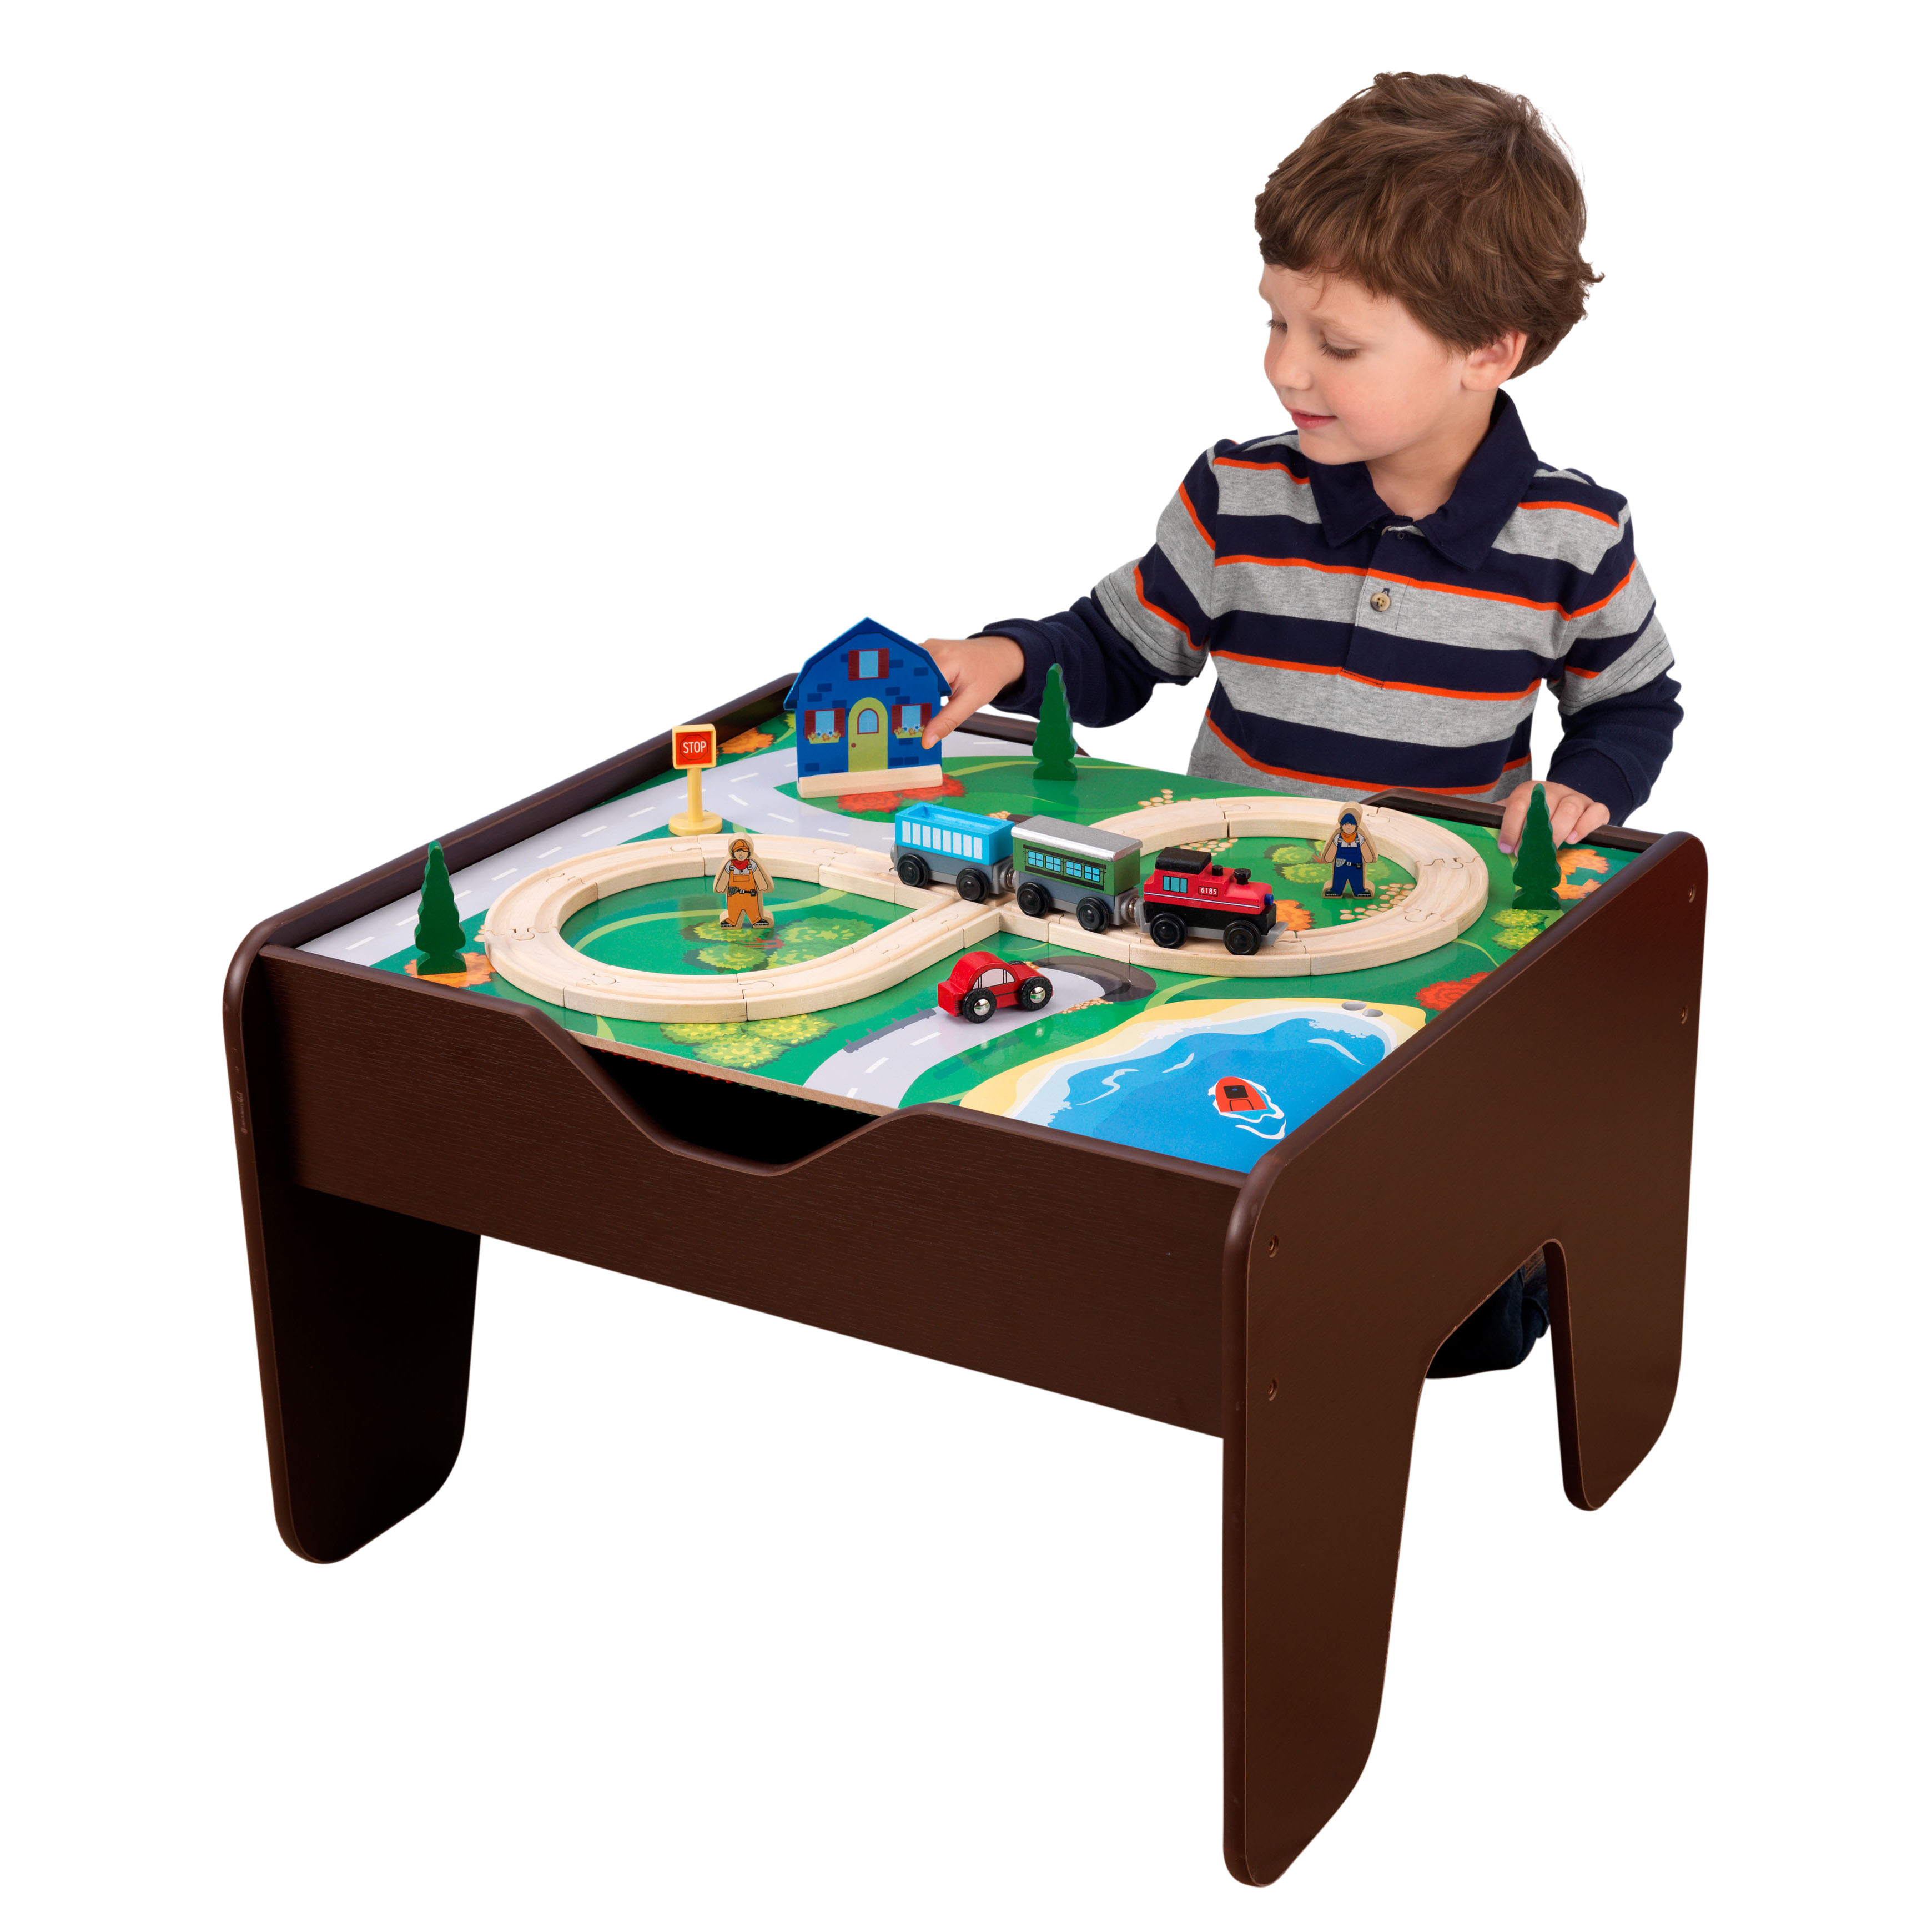 KidKraft 2 In 1 Activity Table With Board   Espresso With 230 Accessories  Included